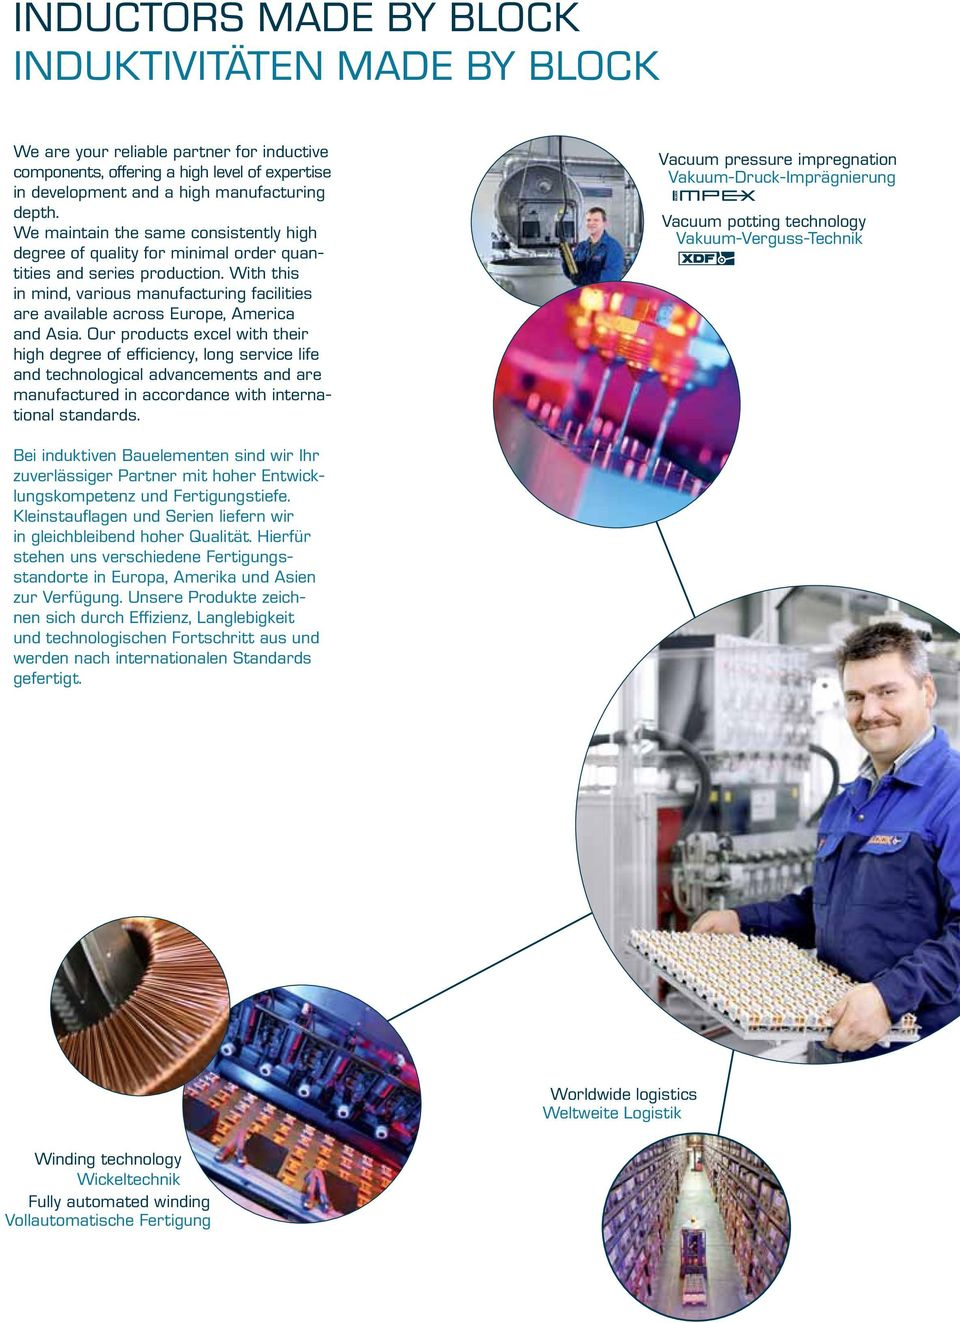 With this in mind, various manufacturing facilities are available across Europe, America and Asia.